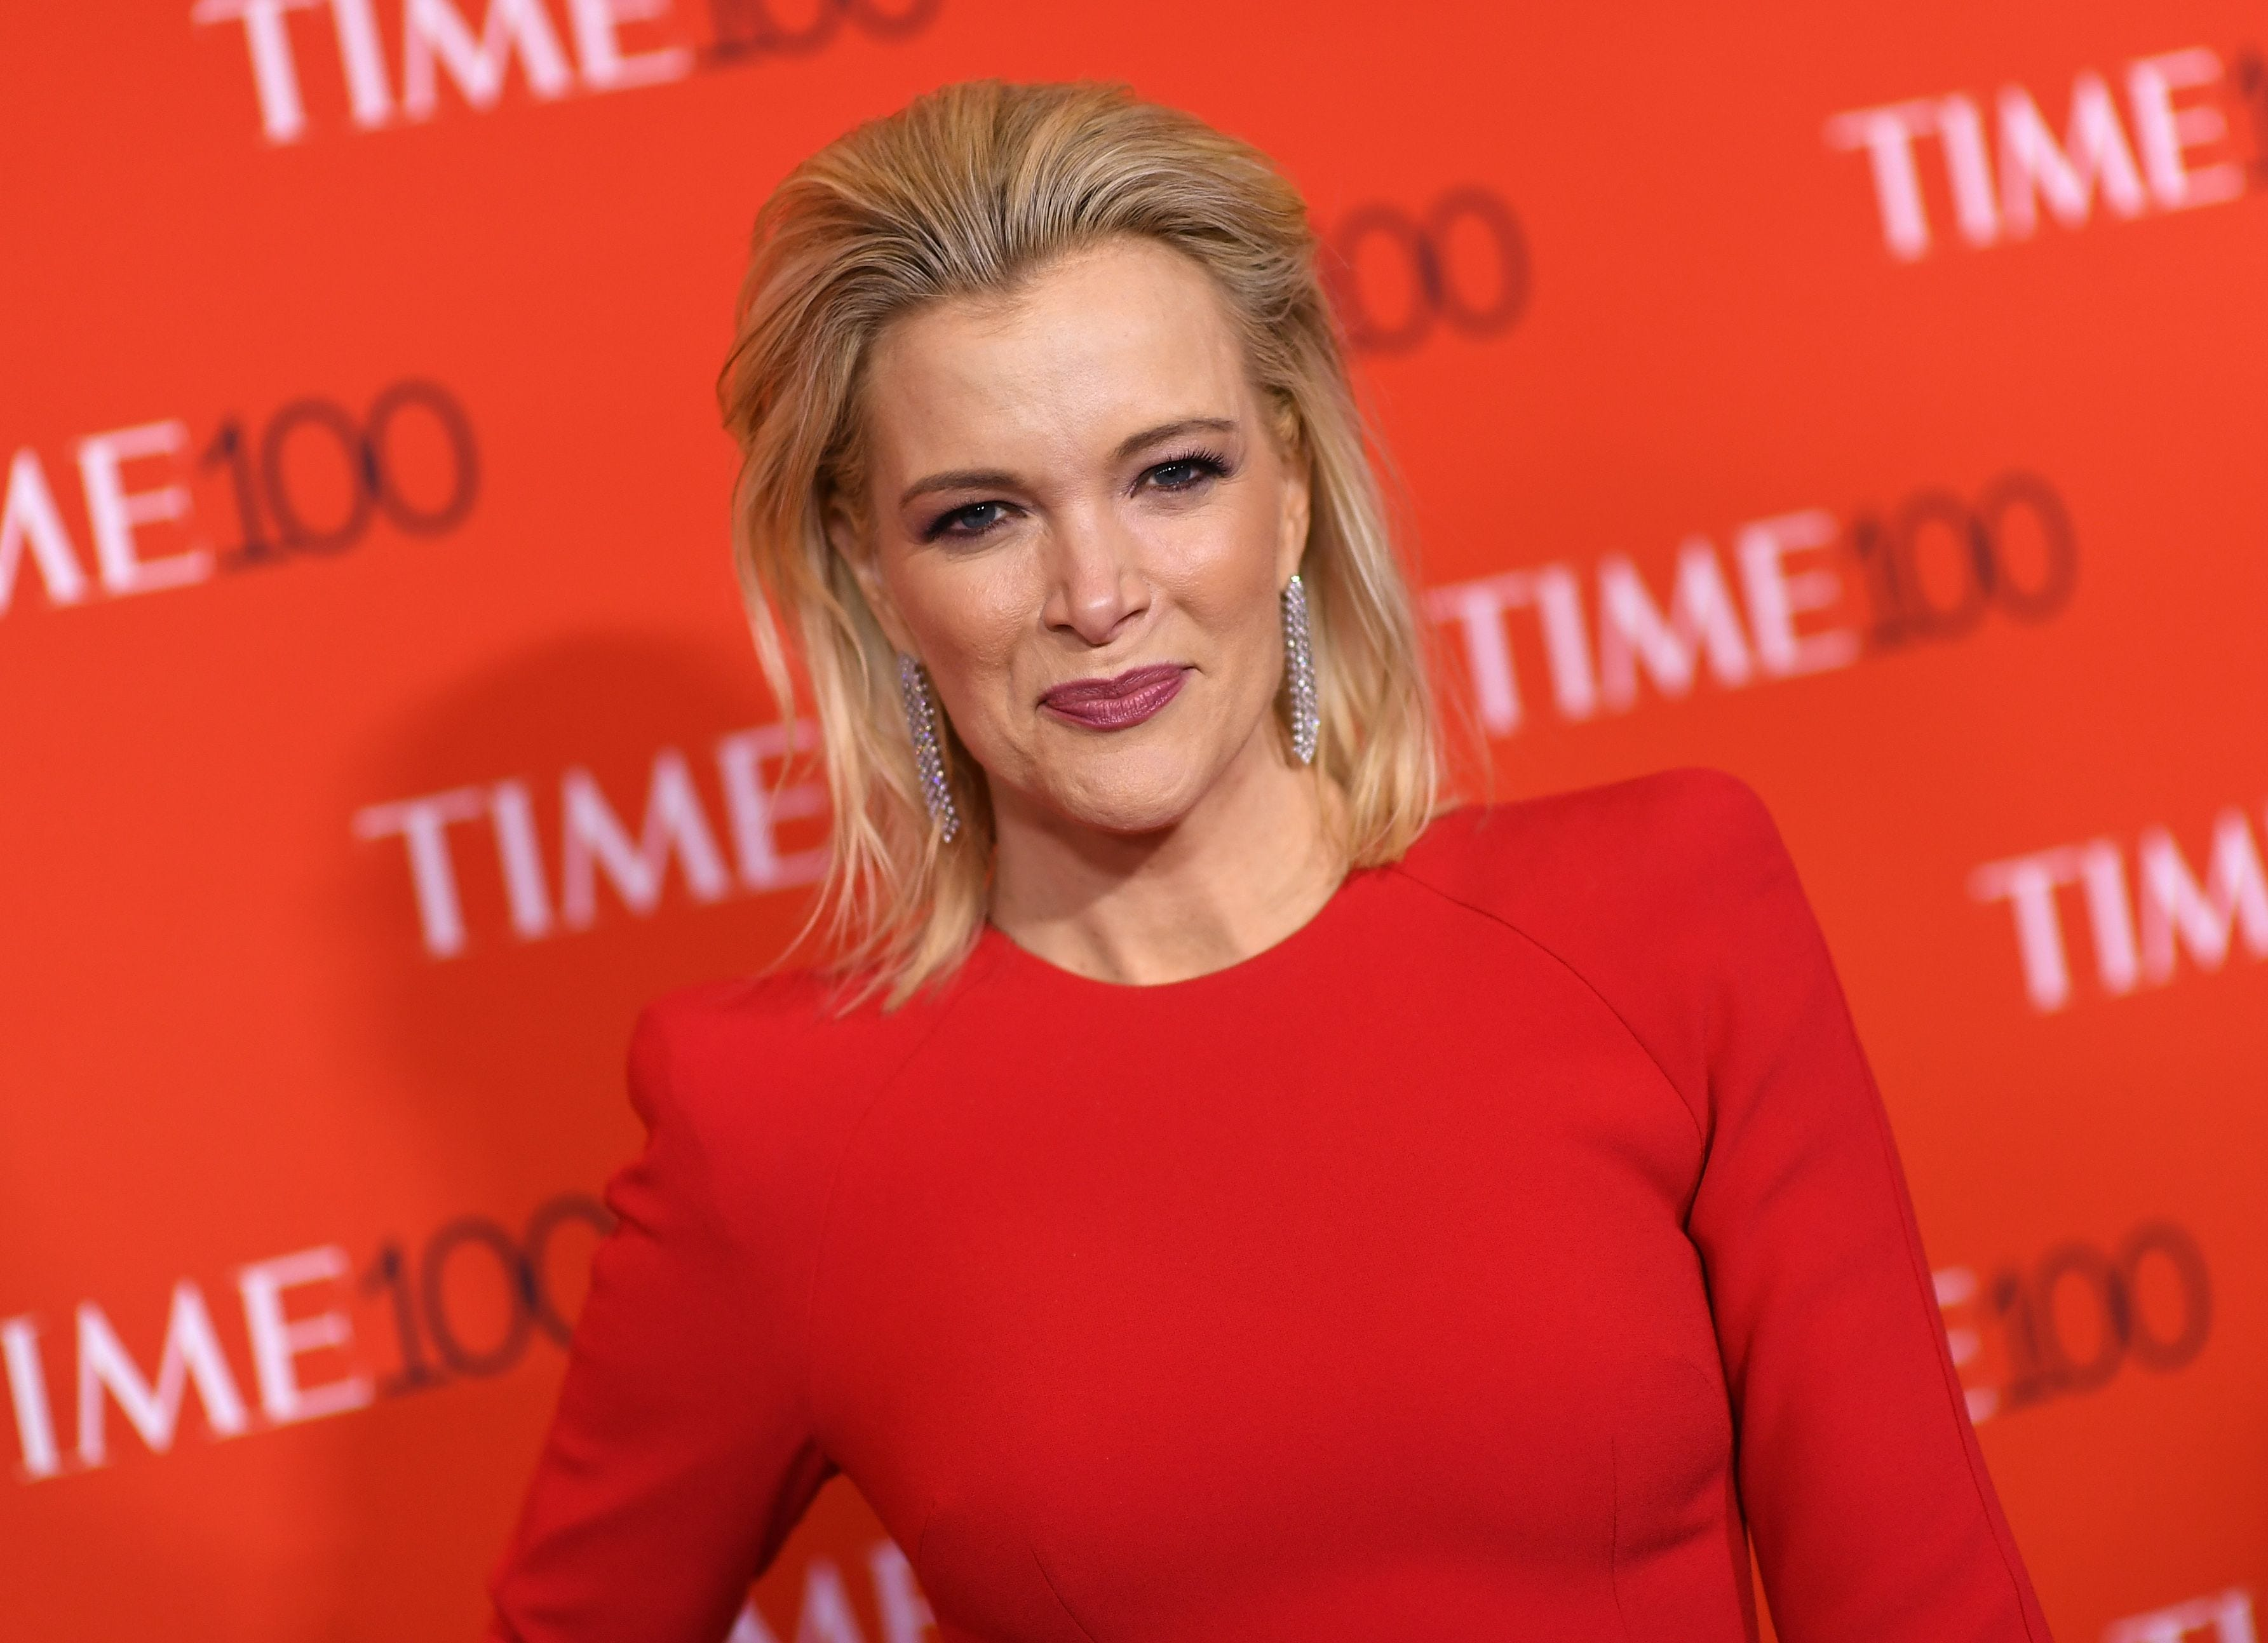 Megyn Kelly calls on NBC to allow outside investigation into accusations against Matt Lauer